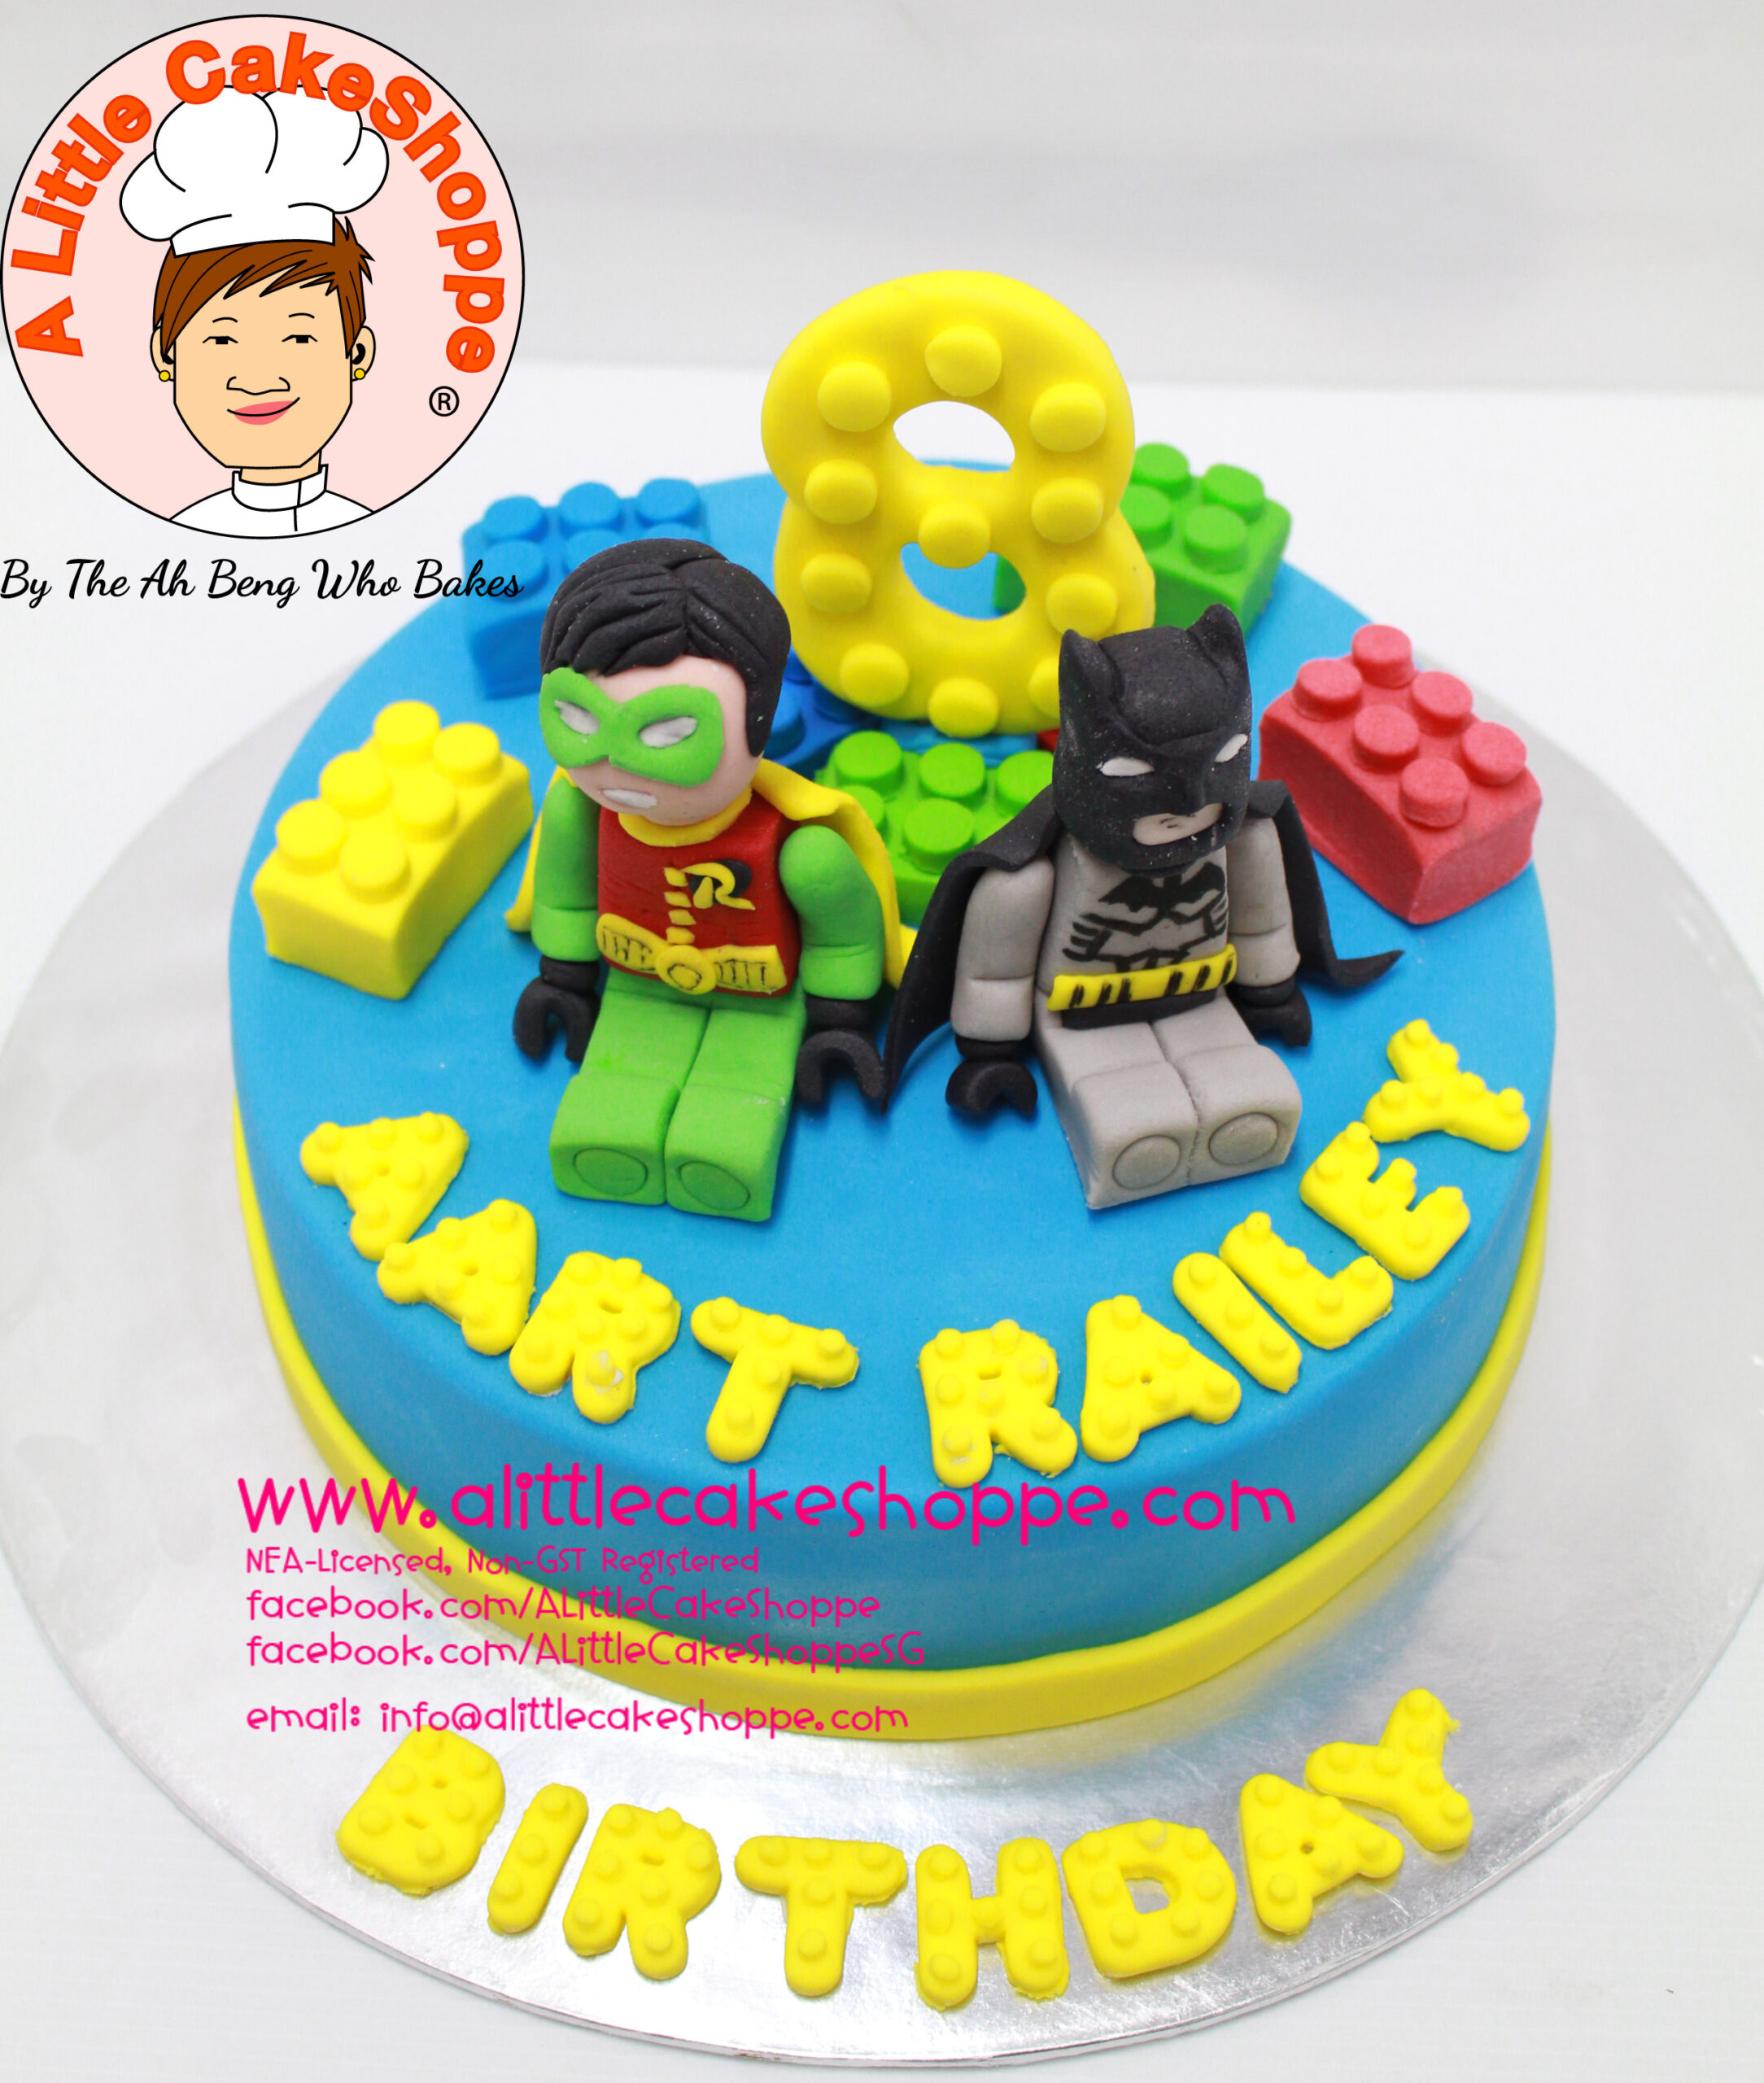 Best Customised Cake Shop Singapore custom cake 2D 3D birthday cake cupcakes desserts wedding corporate events anniversary 1st birthday 21st birthday fondant fresh cream buttercream cakes alittlecakeshoppe a little cake shoppe compliments review singapore bakers SG cake shop cakeshop ah beng who bakes lego batman